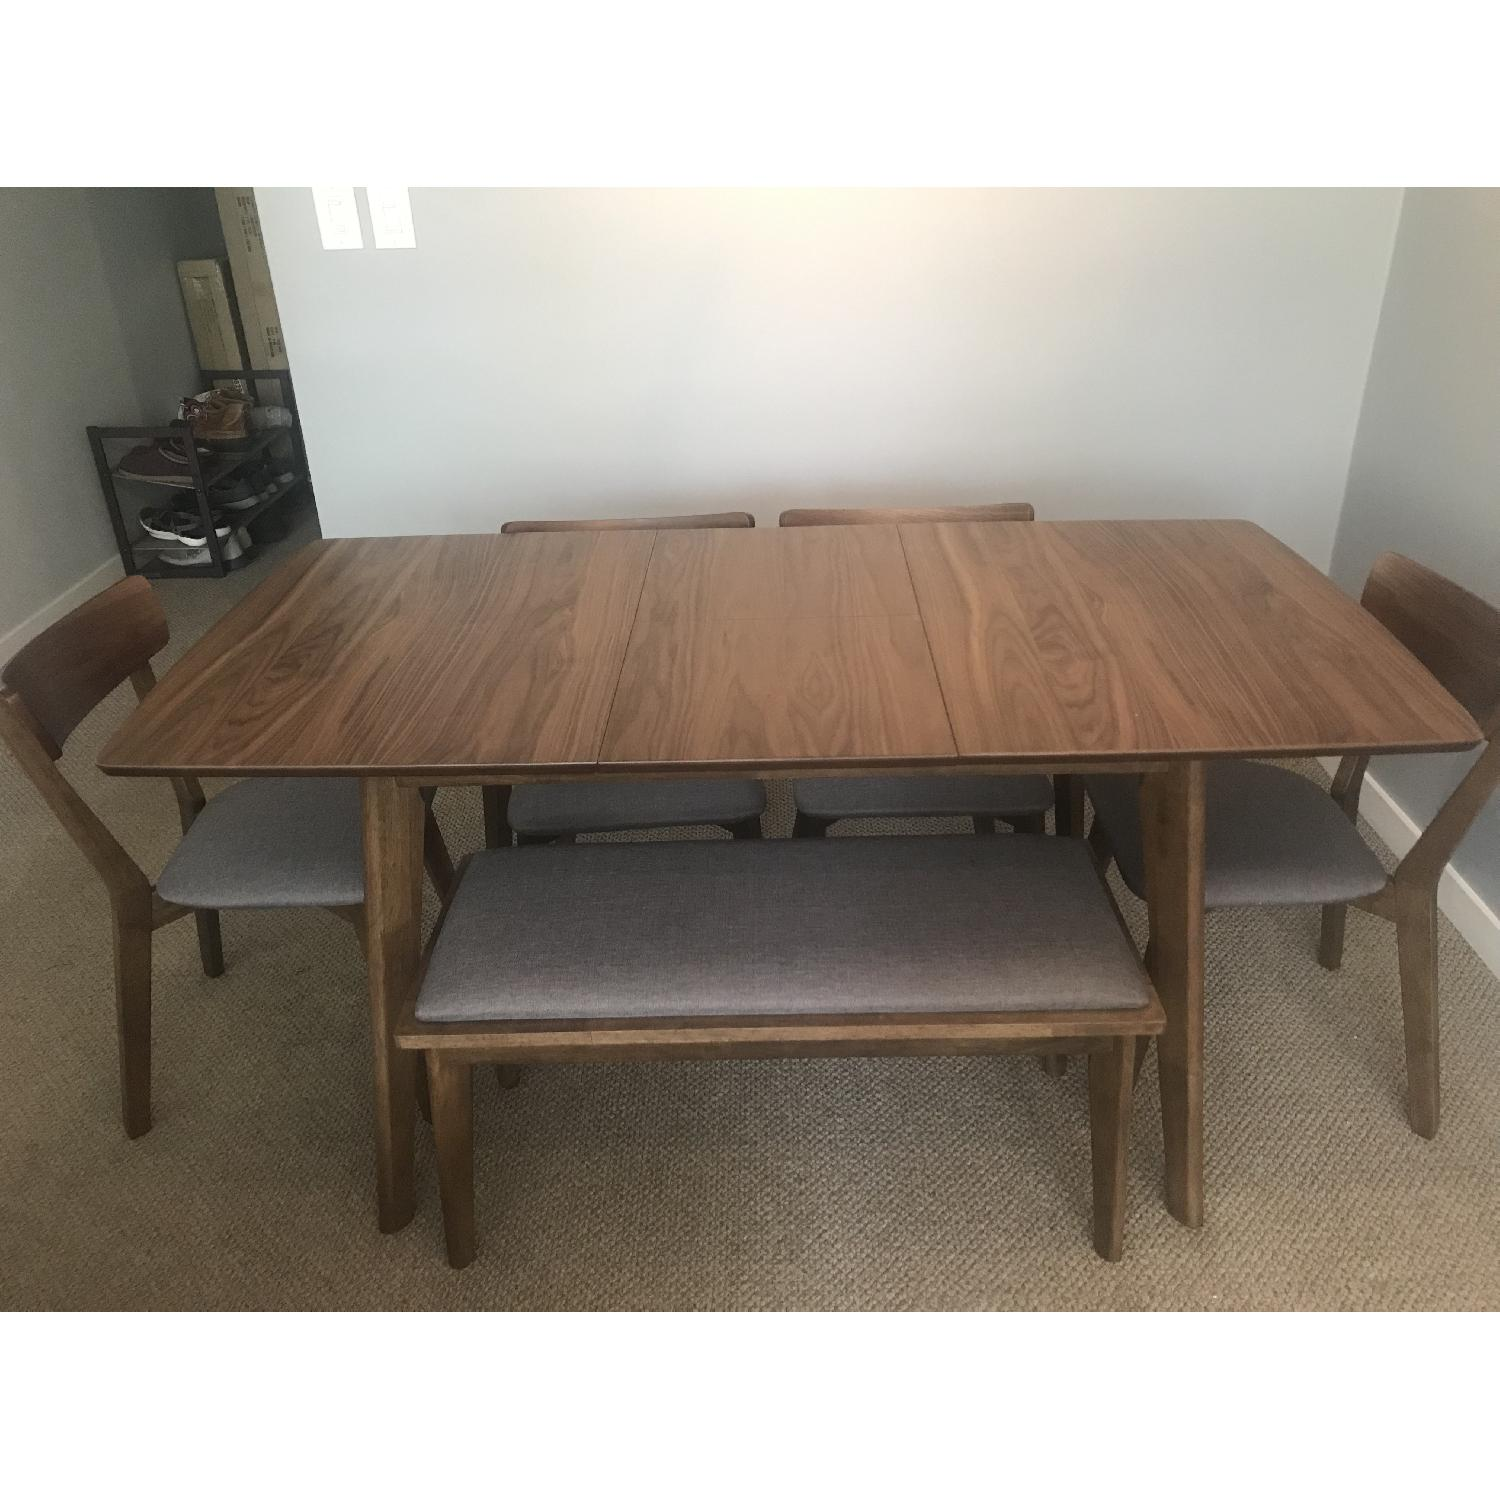 Bungalow Rose Rockaway Extendable Solid Wood Dining Table - image-1